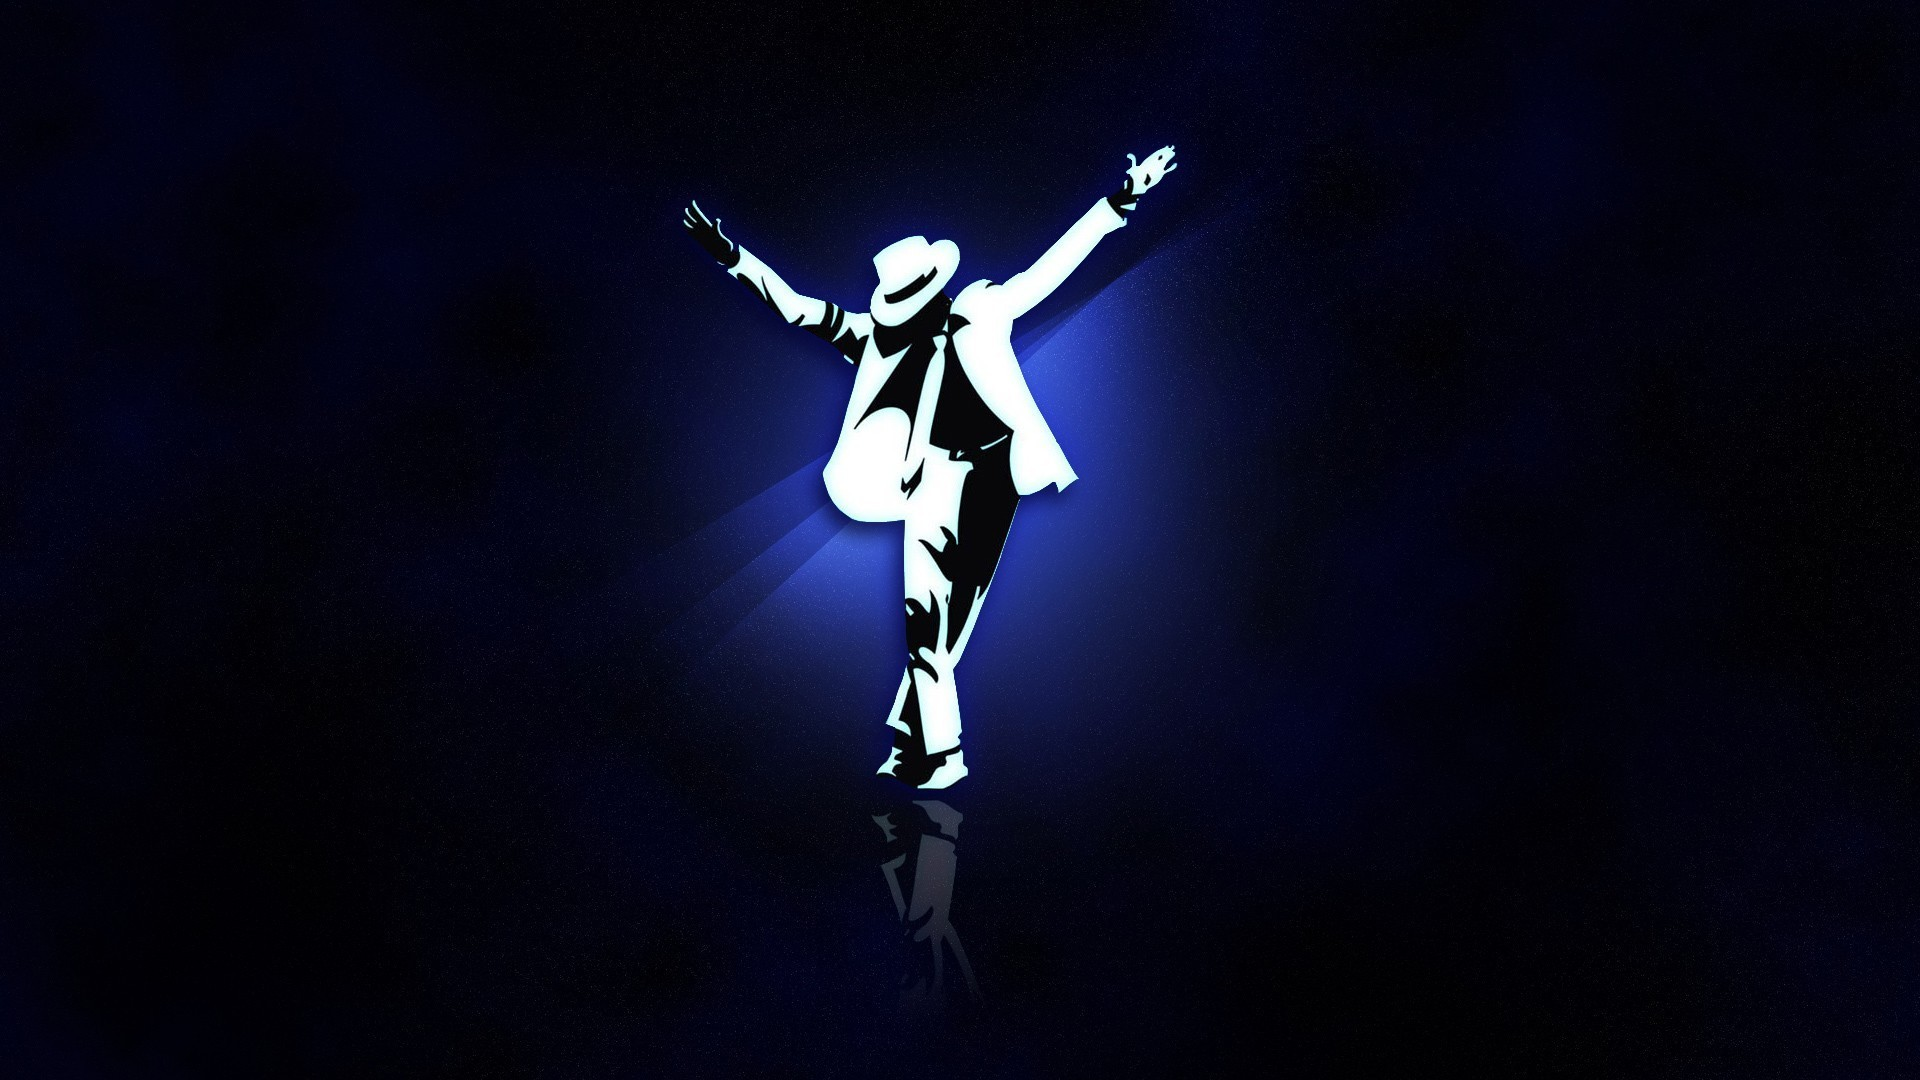 Michael Jackson Moonwalk Wallpapers Mobile Festival Wallpaper 1920x1080